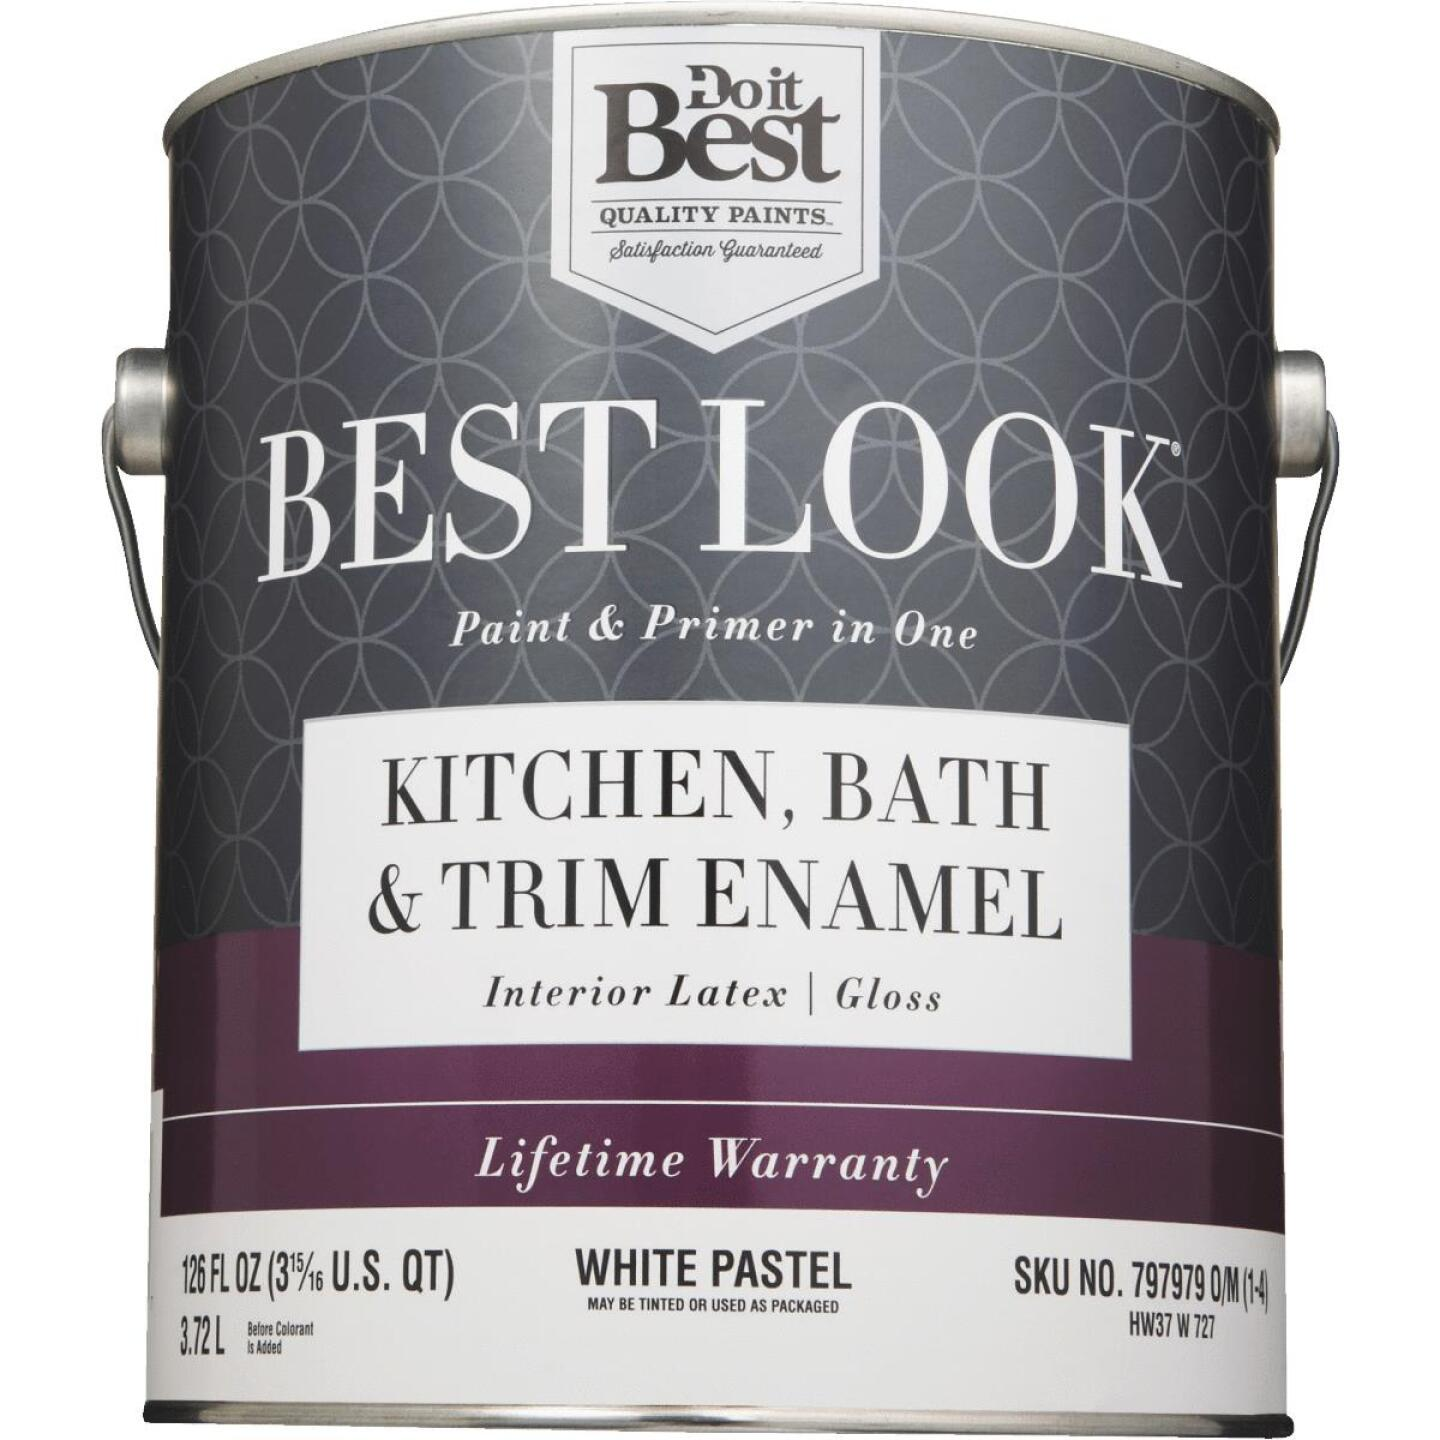 Best Look Latex Paint & Primer In One Kitchen Bath & Trim Enamel Gloss Interior Wall Paint, White-Pastel Base, 1 Gal. Image 2